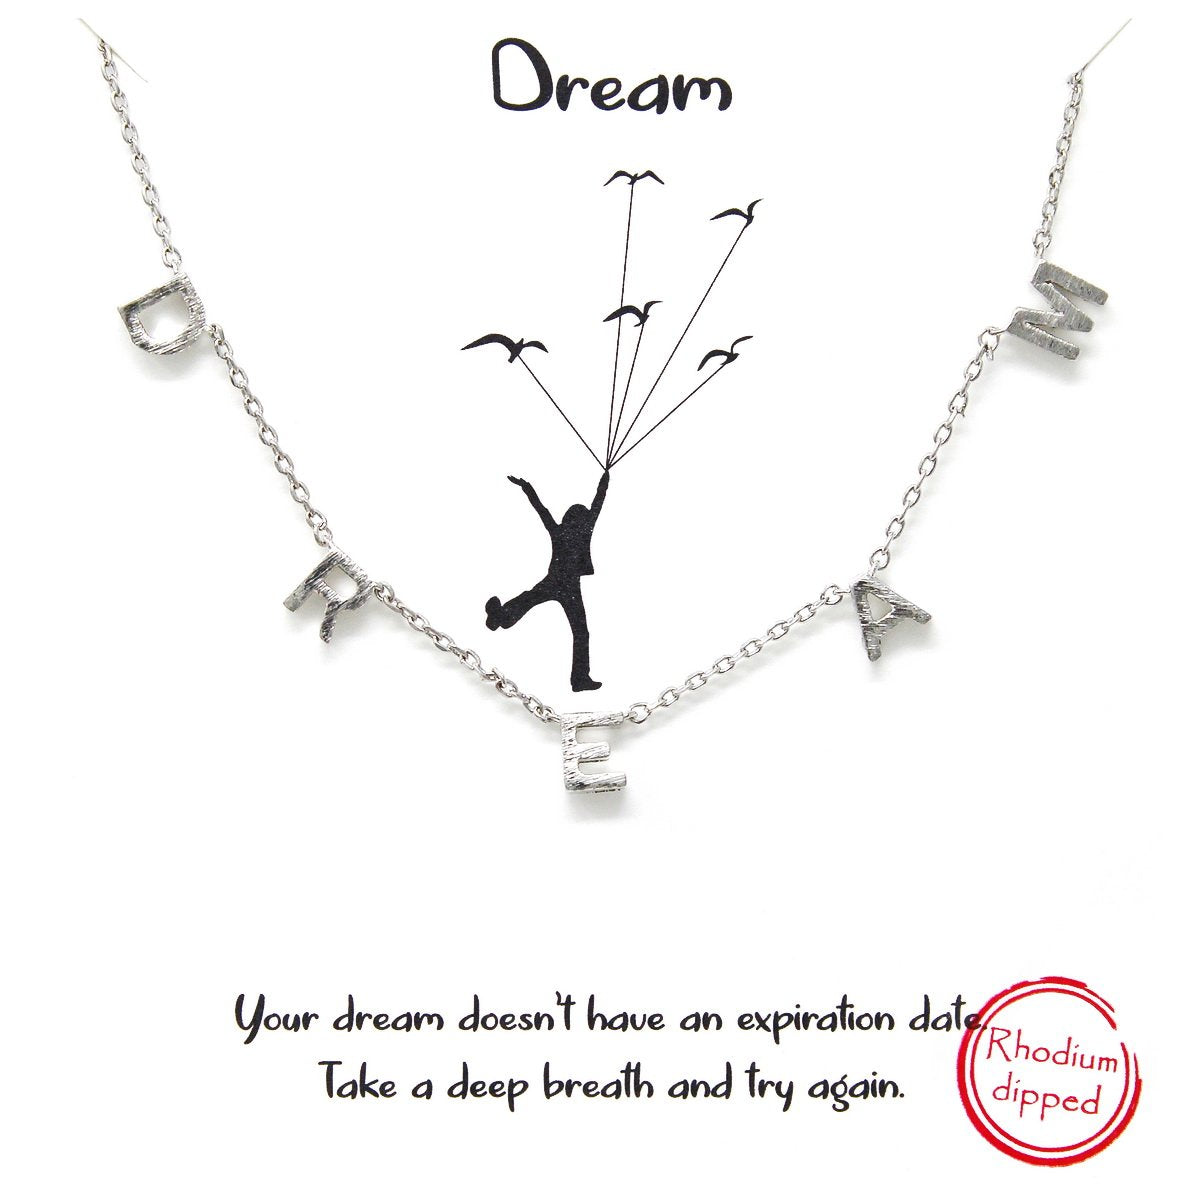 D R E A M - Necklace - Jaffi's